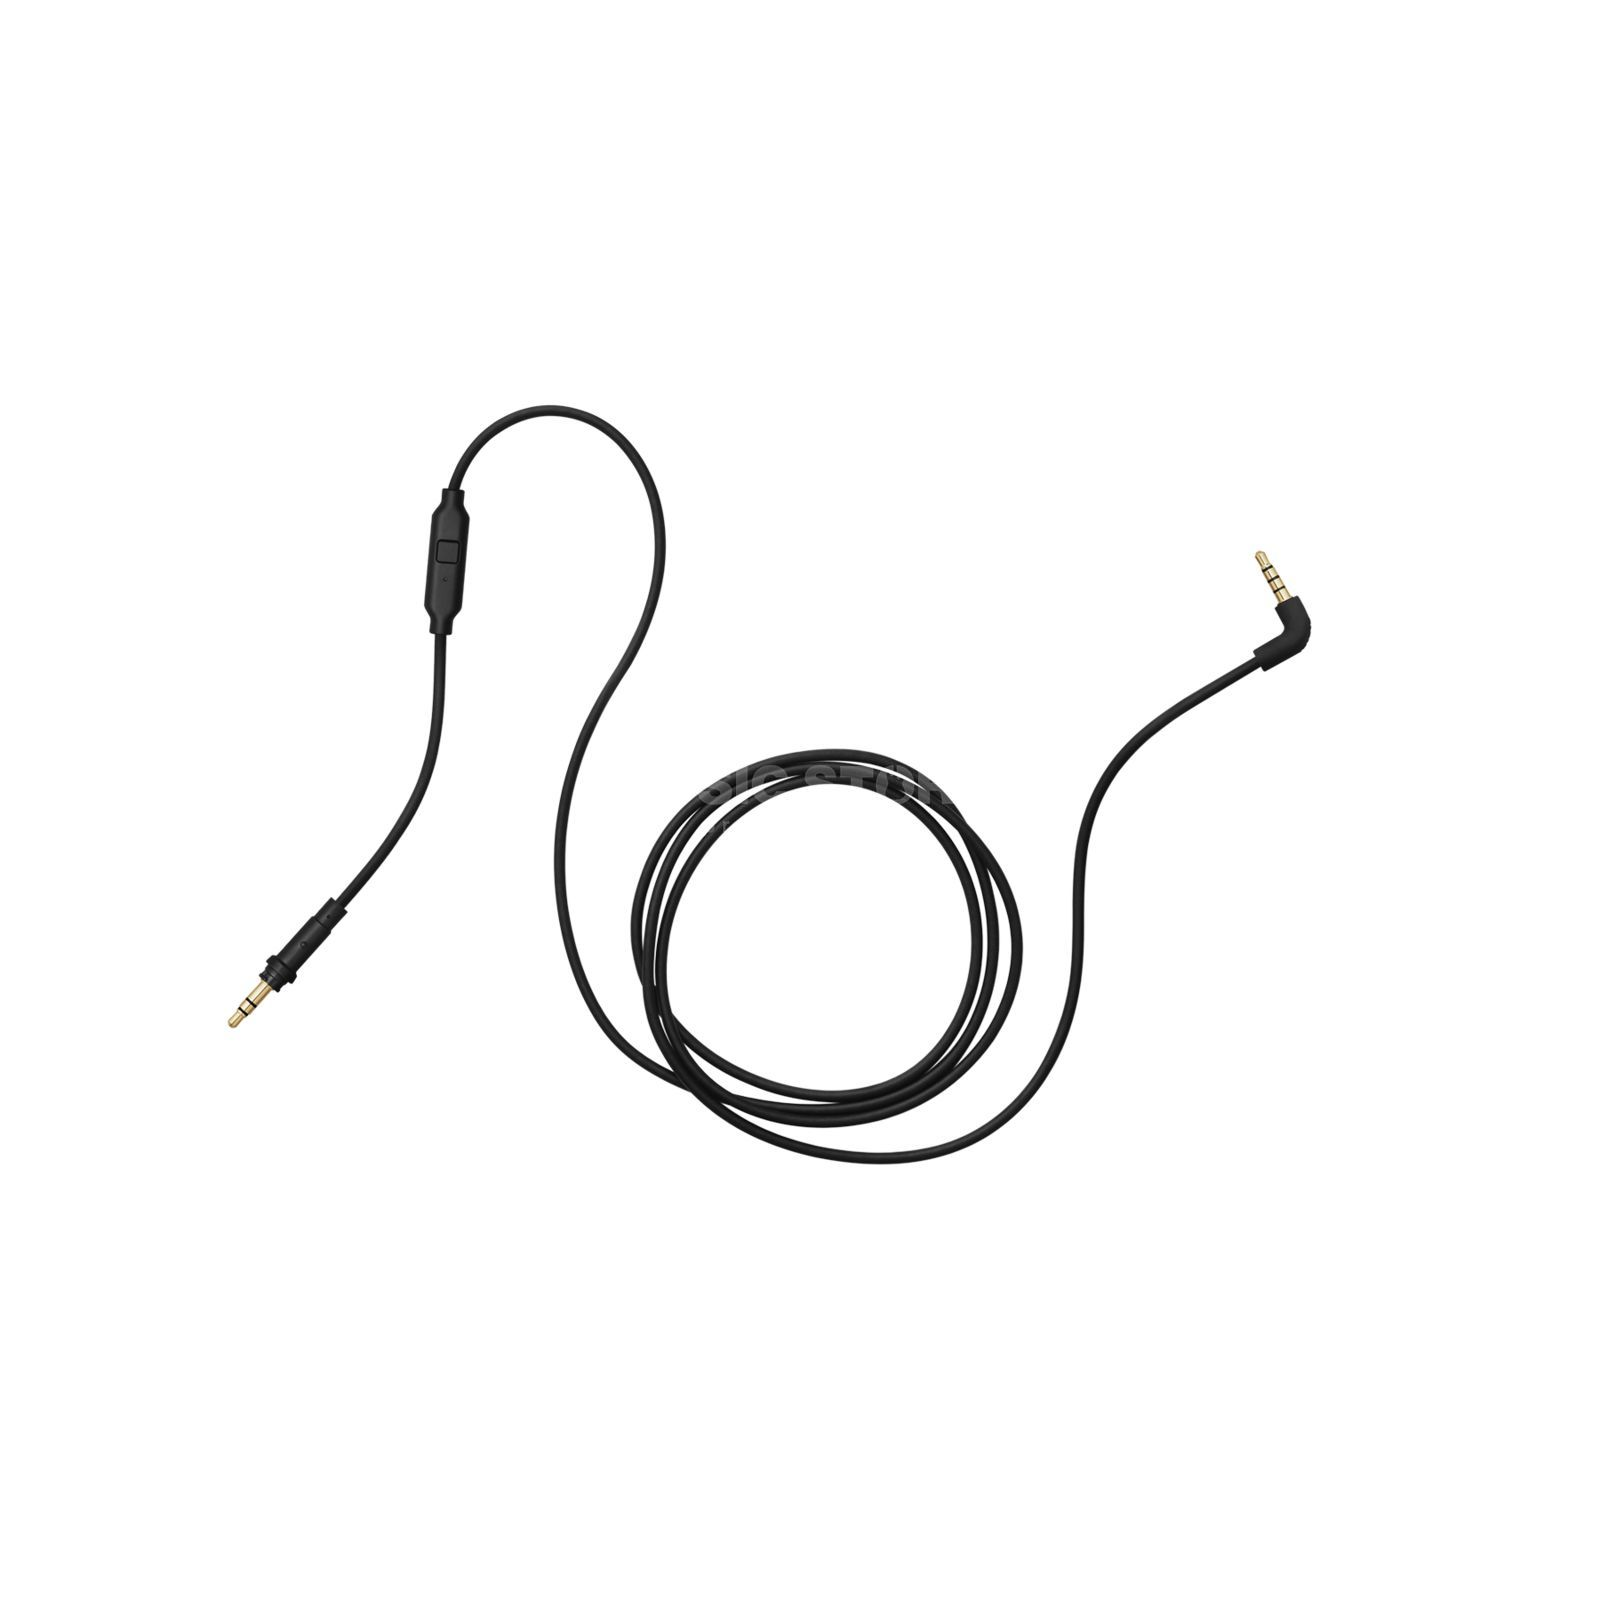 Aiaiai C01 - straight w/Mic Cable for TMA-2 Produktbillede